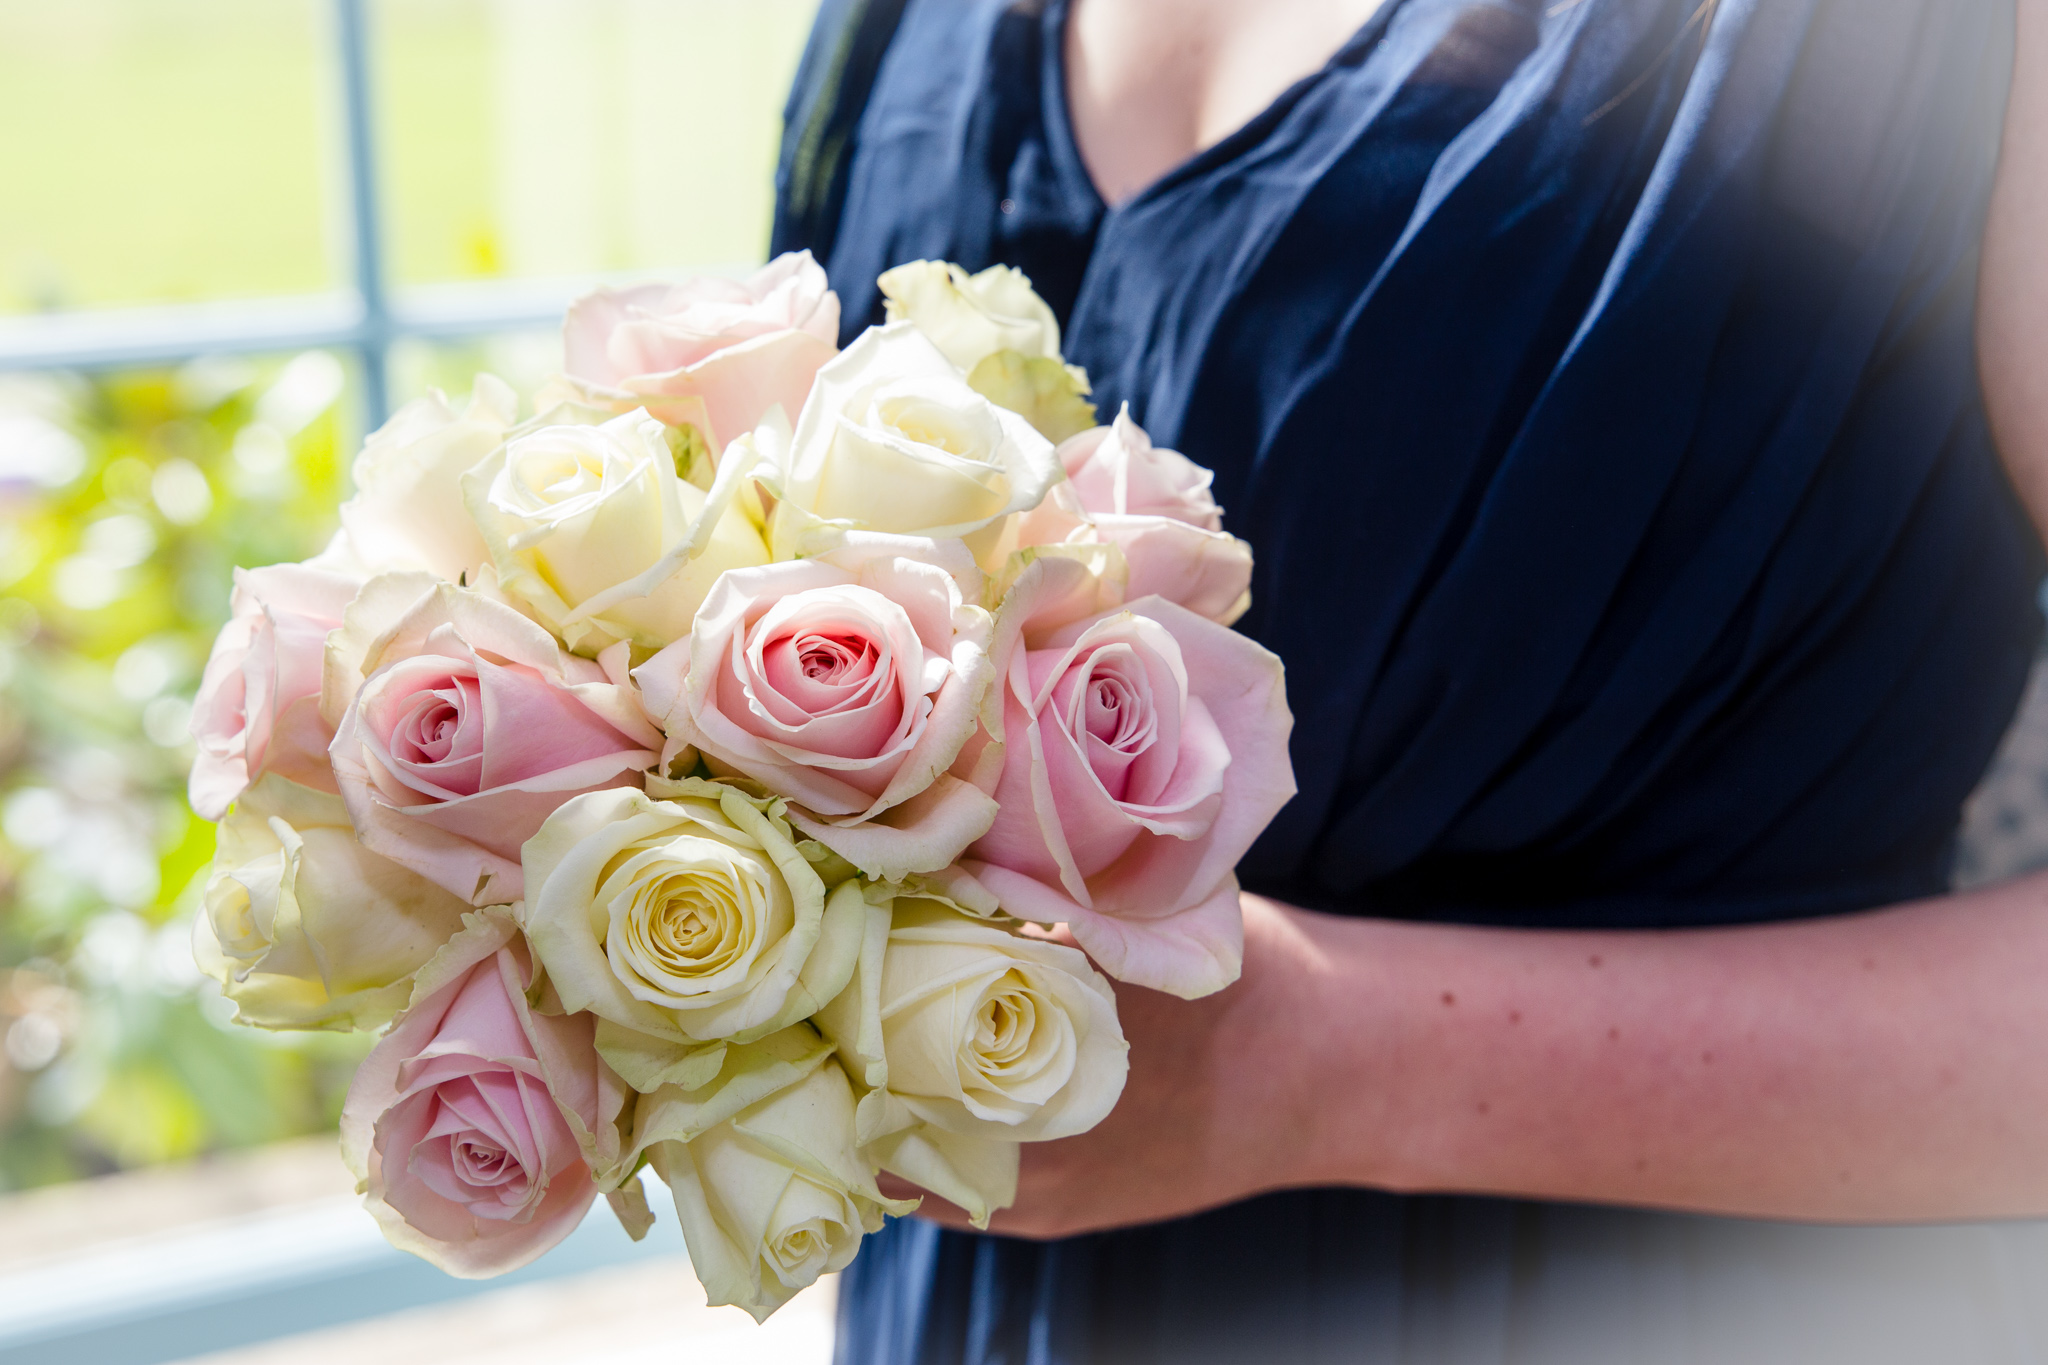 bridesmaid bouquet in hands